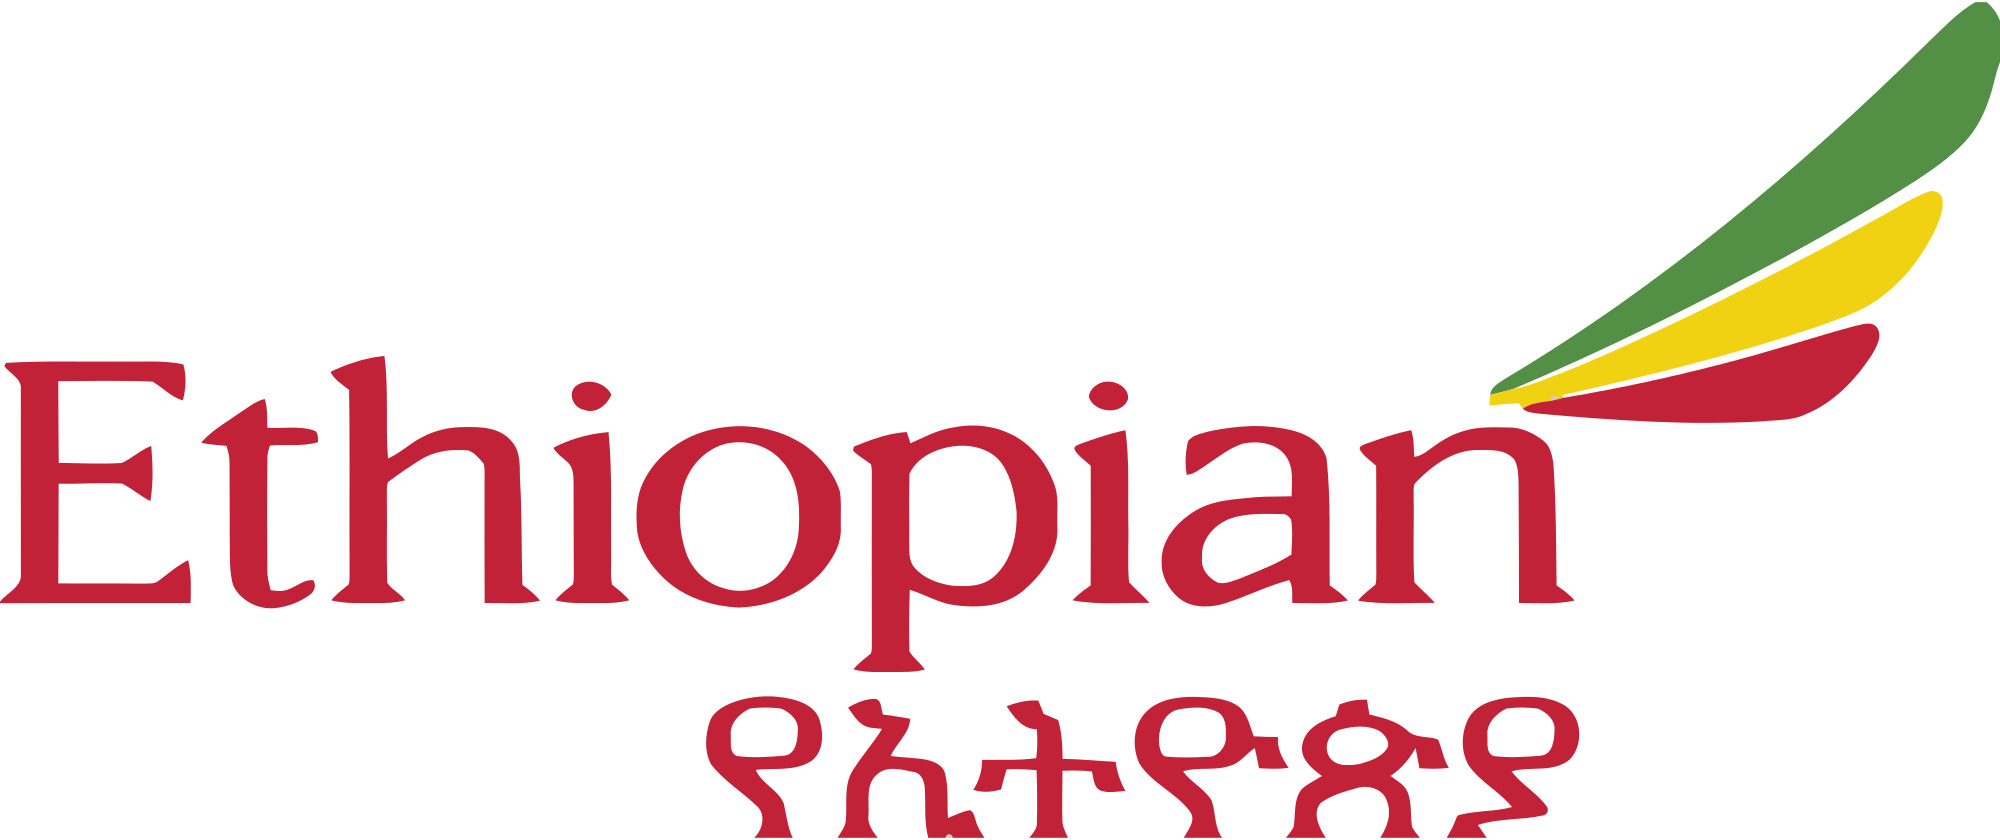 Ethiopian Airlines picture